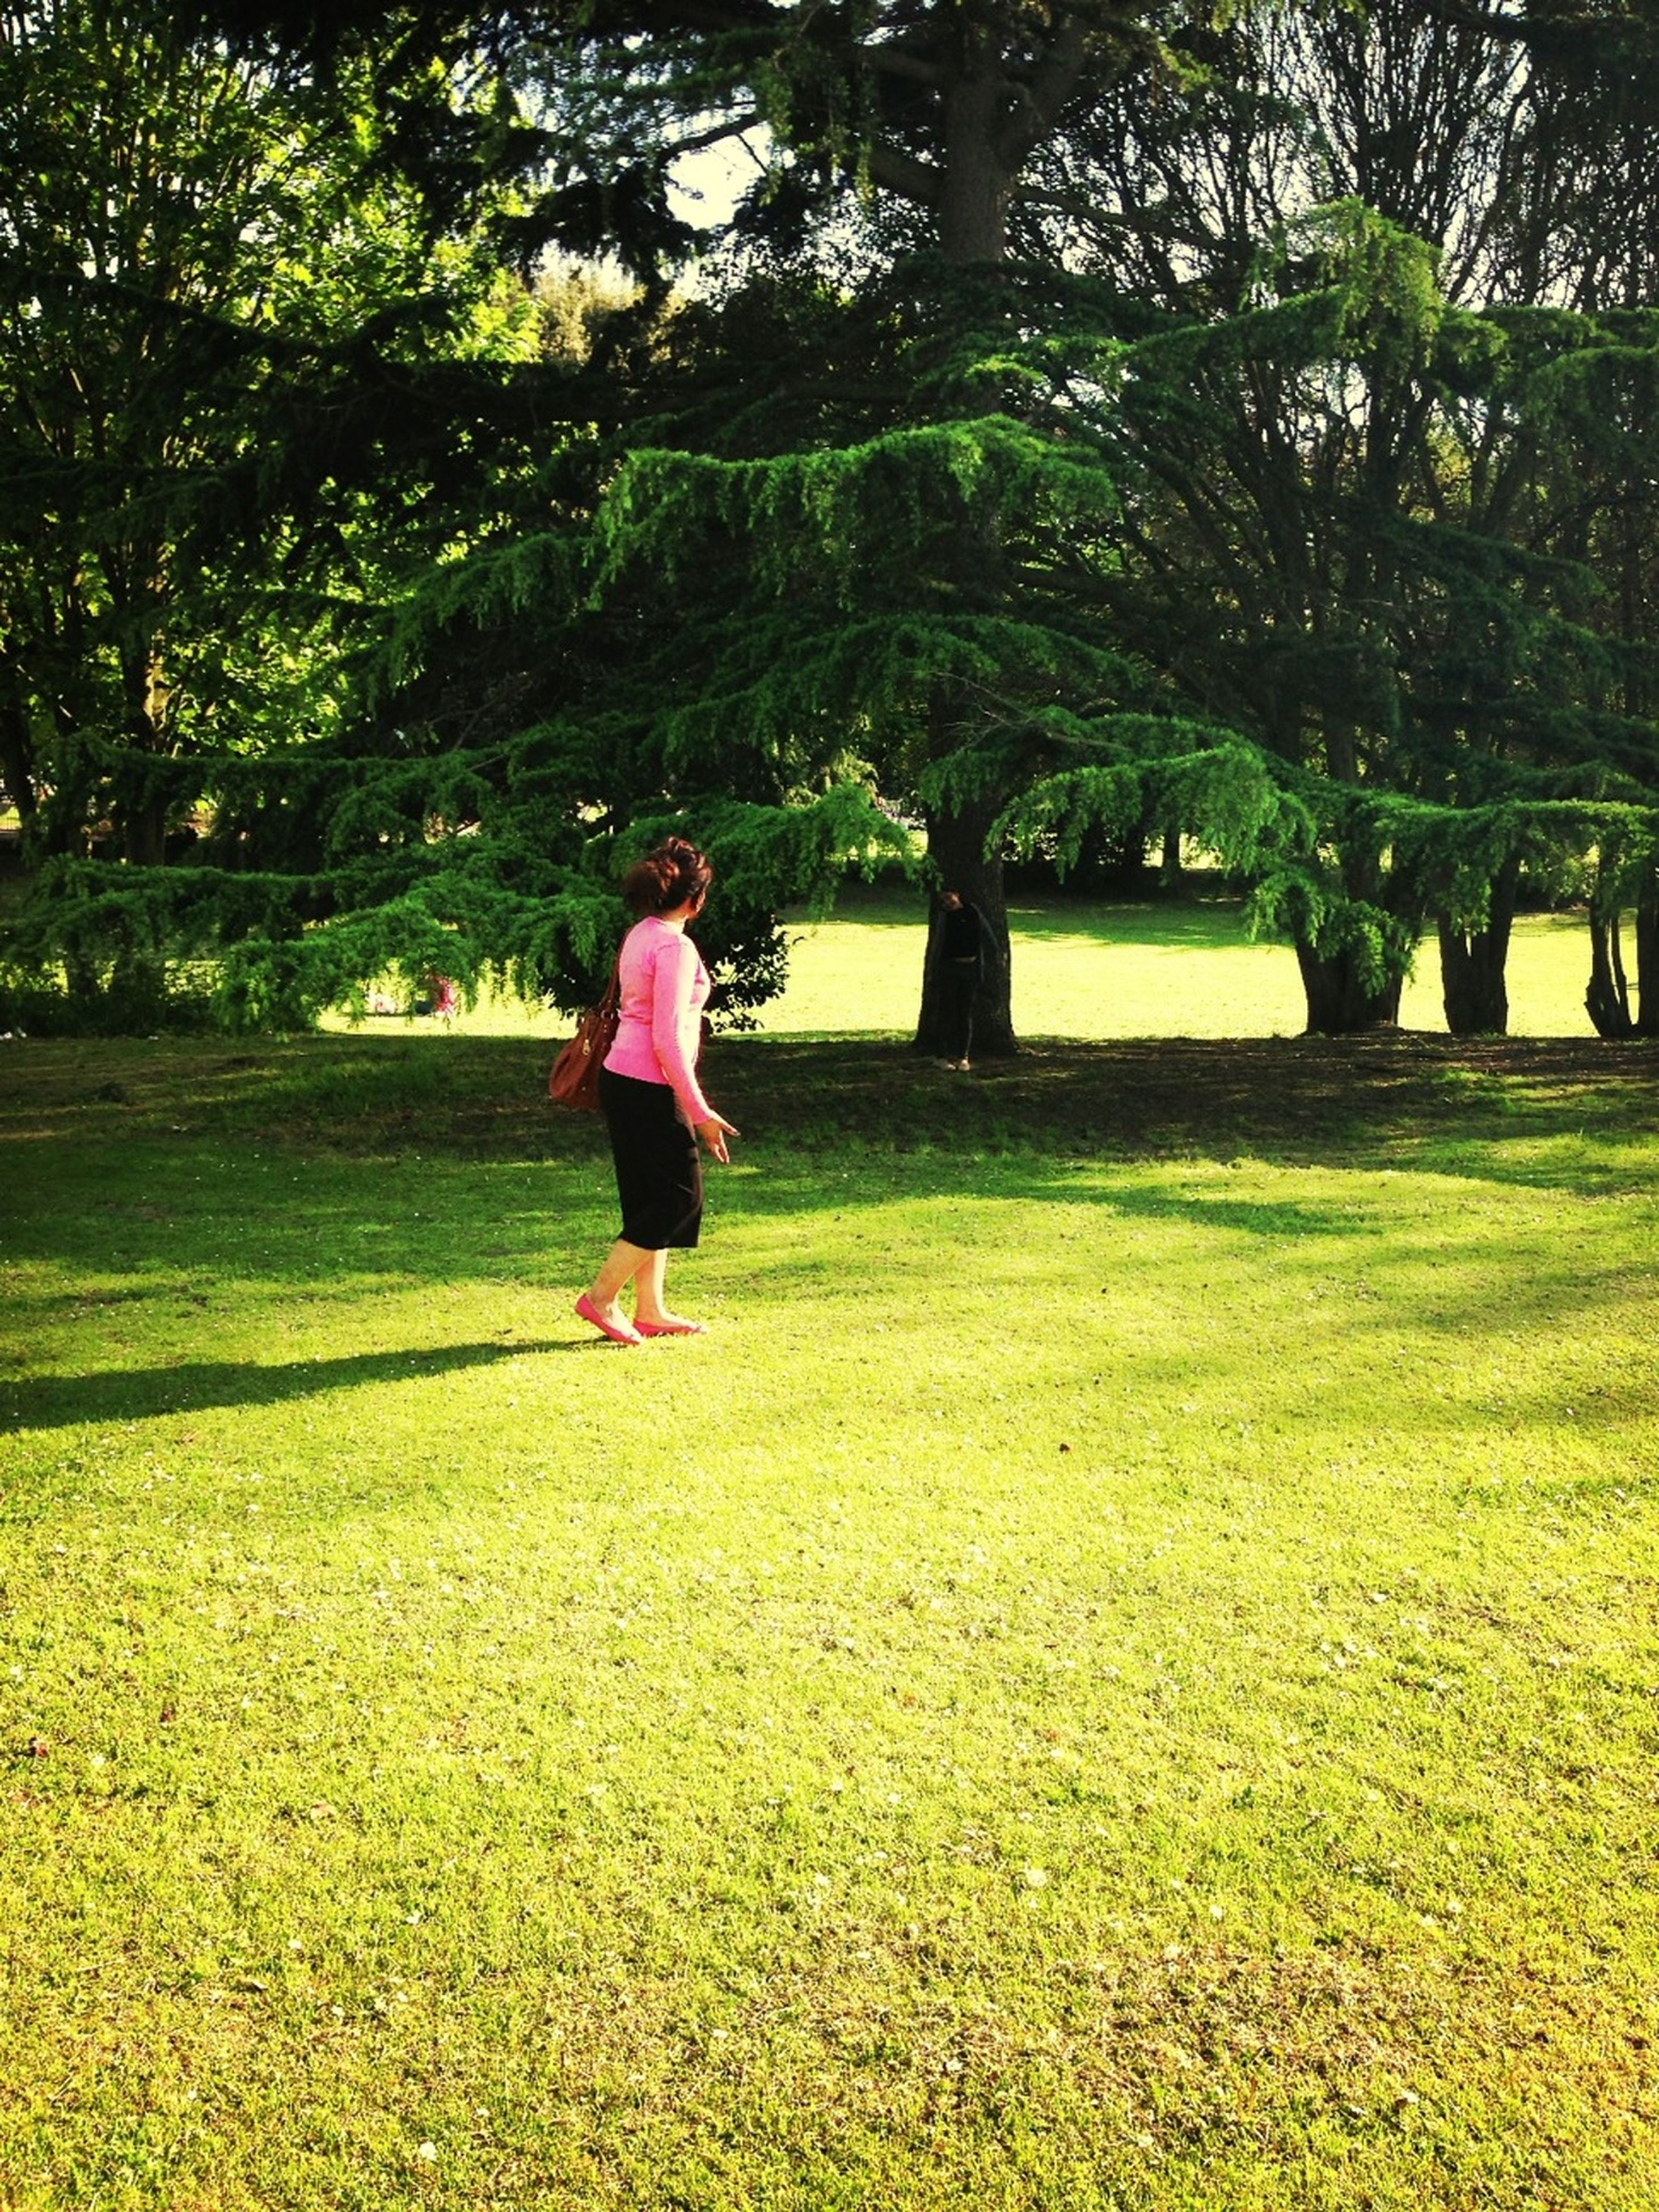 grass, tree, full length, lifestyles, leisure activity, park - man made space, rear view, casual clothing, childhood, green color, walking, grassy, park, girls, standing, field, growth, nature